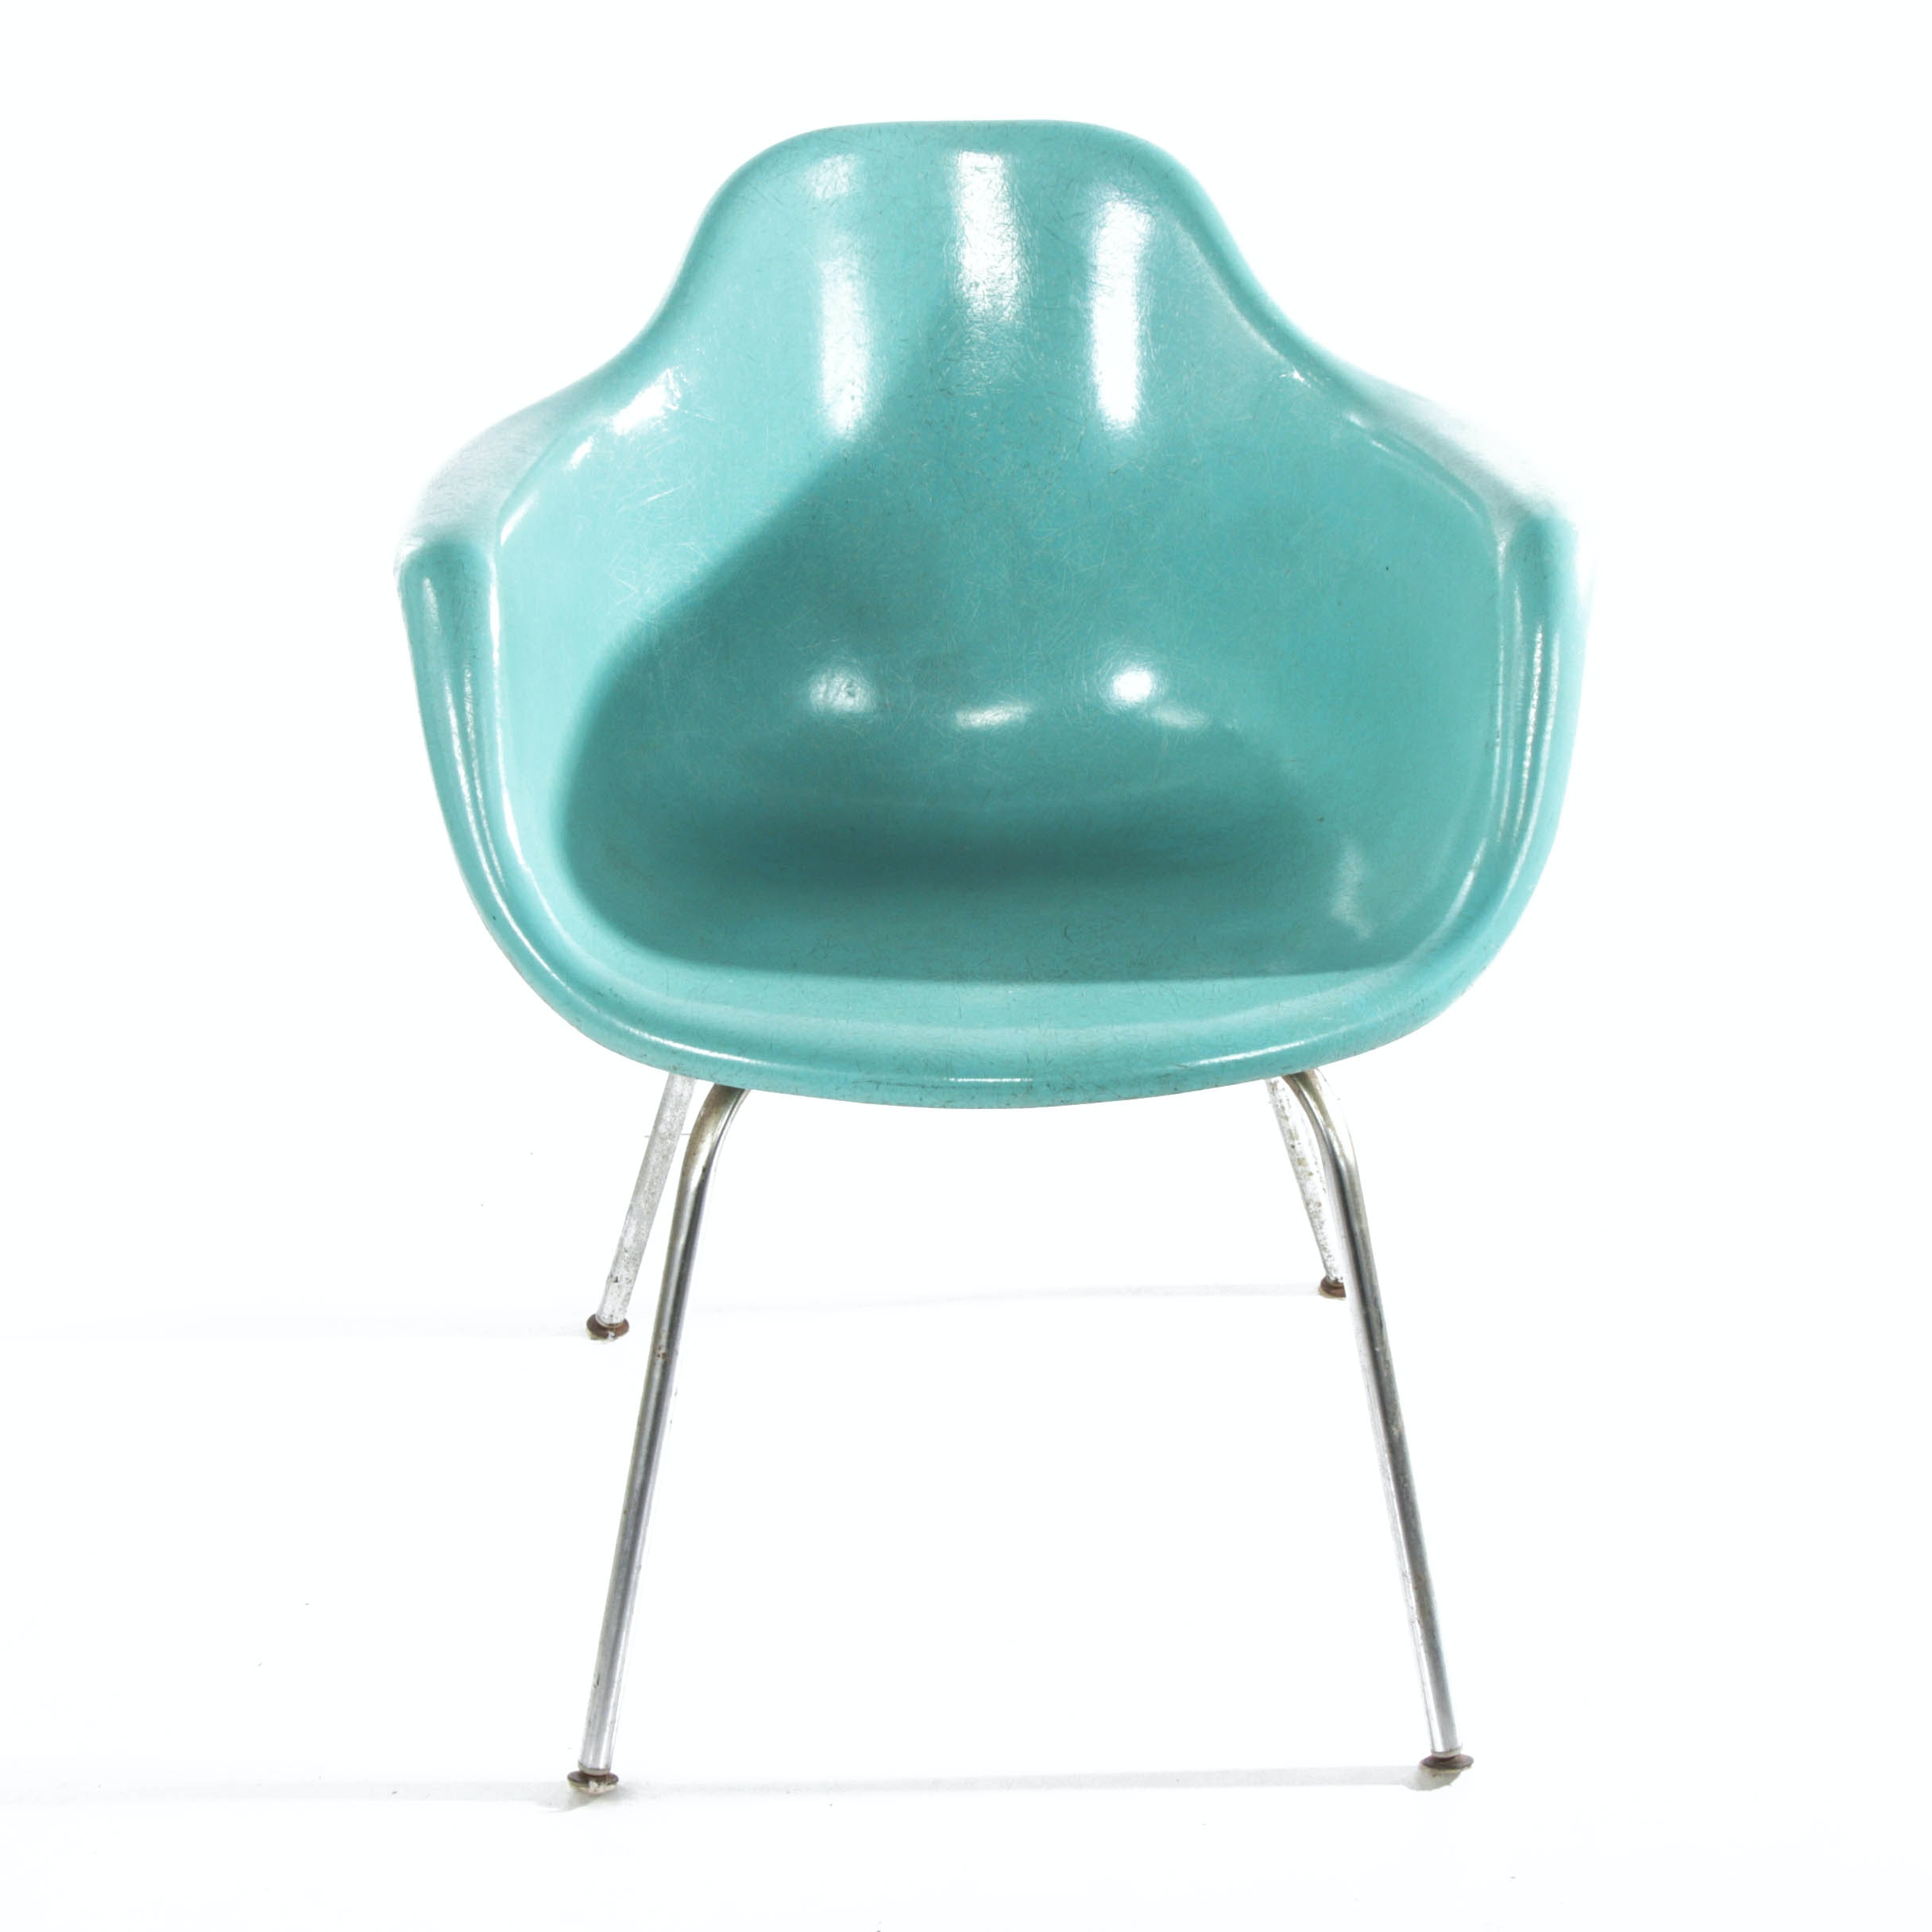 Eames Style Fiberglass Shell Chair, Mid-20th Century